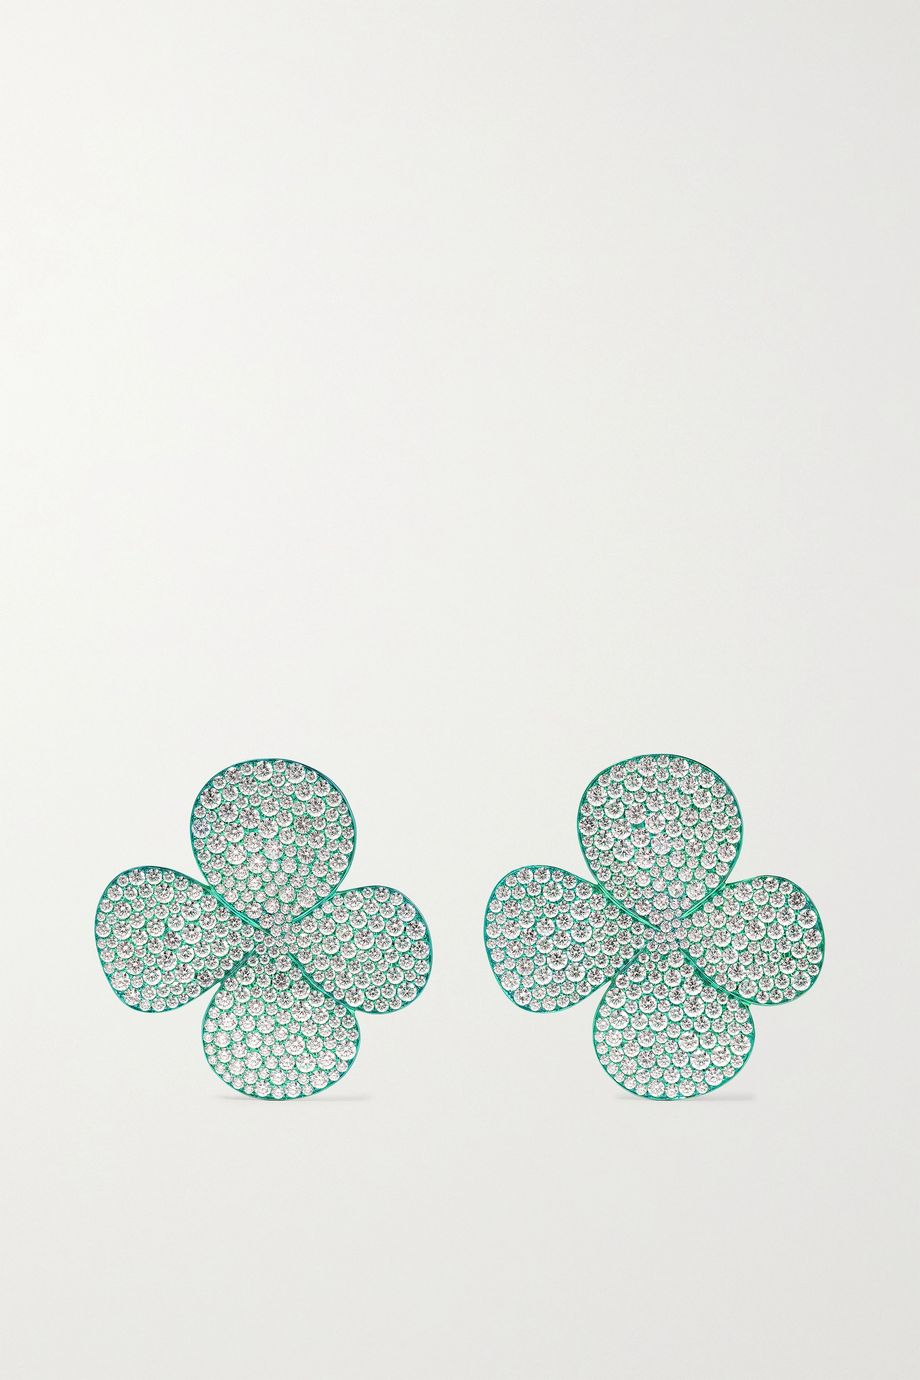 G by Glenn Spiro Clover Leaf titanium diamond earrings